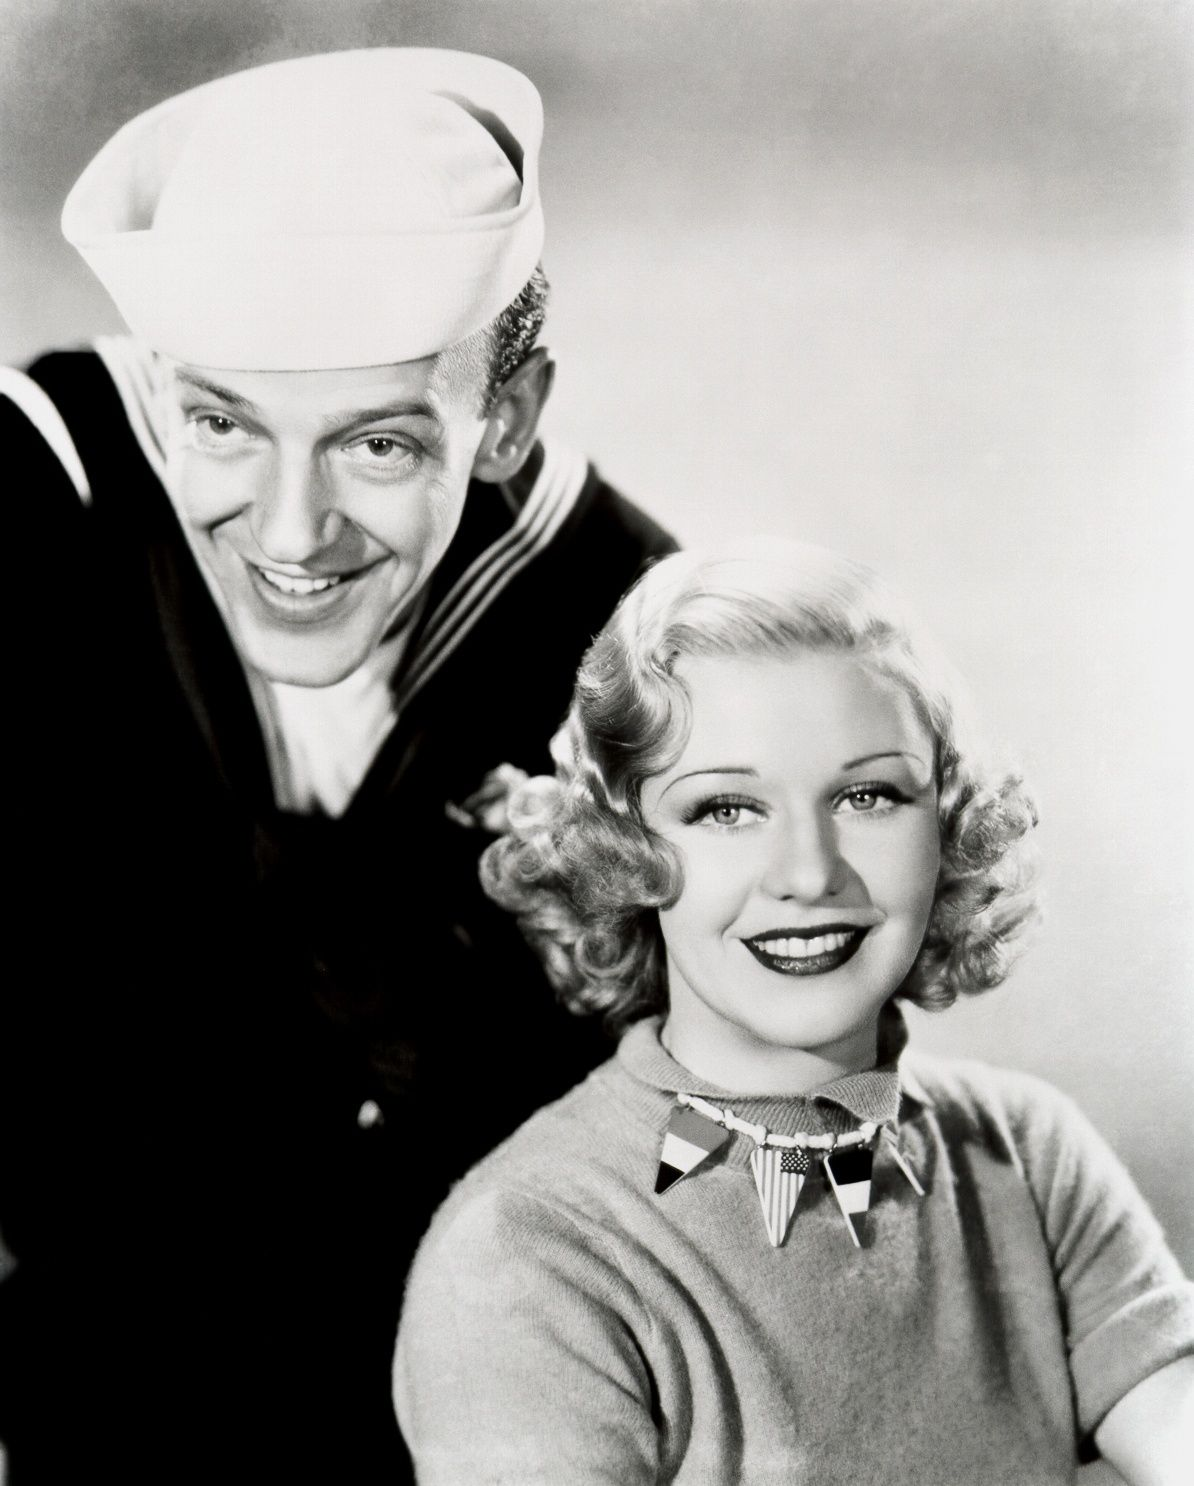 Ginger Rogers & Fred Astaire- I used to stay up late on weekends with my Dad to watch old movies